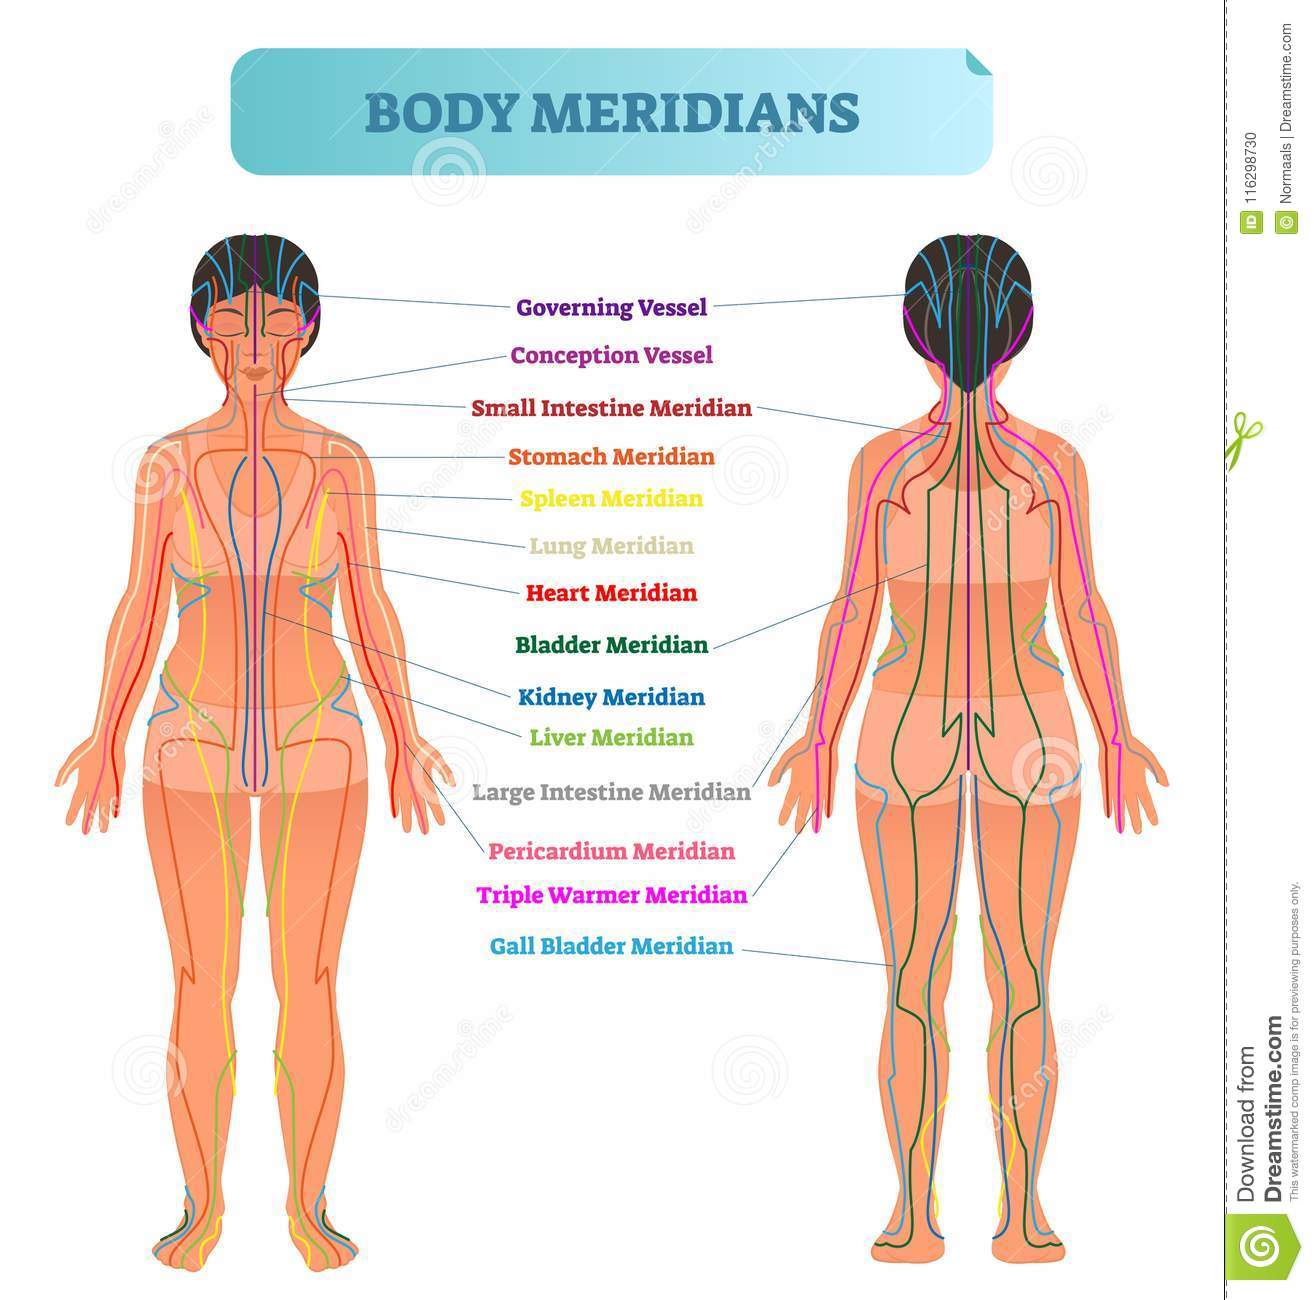 hight resolution of body meridian system vector illustration scheme chinese energy acupuncture therapy diagram chart